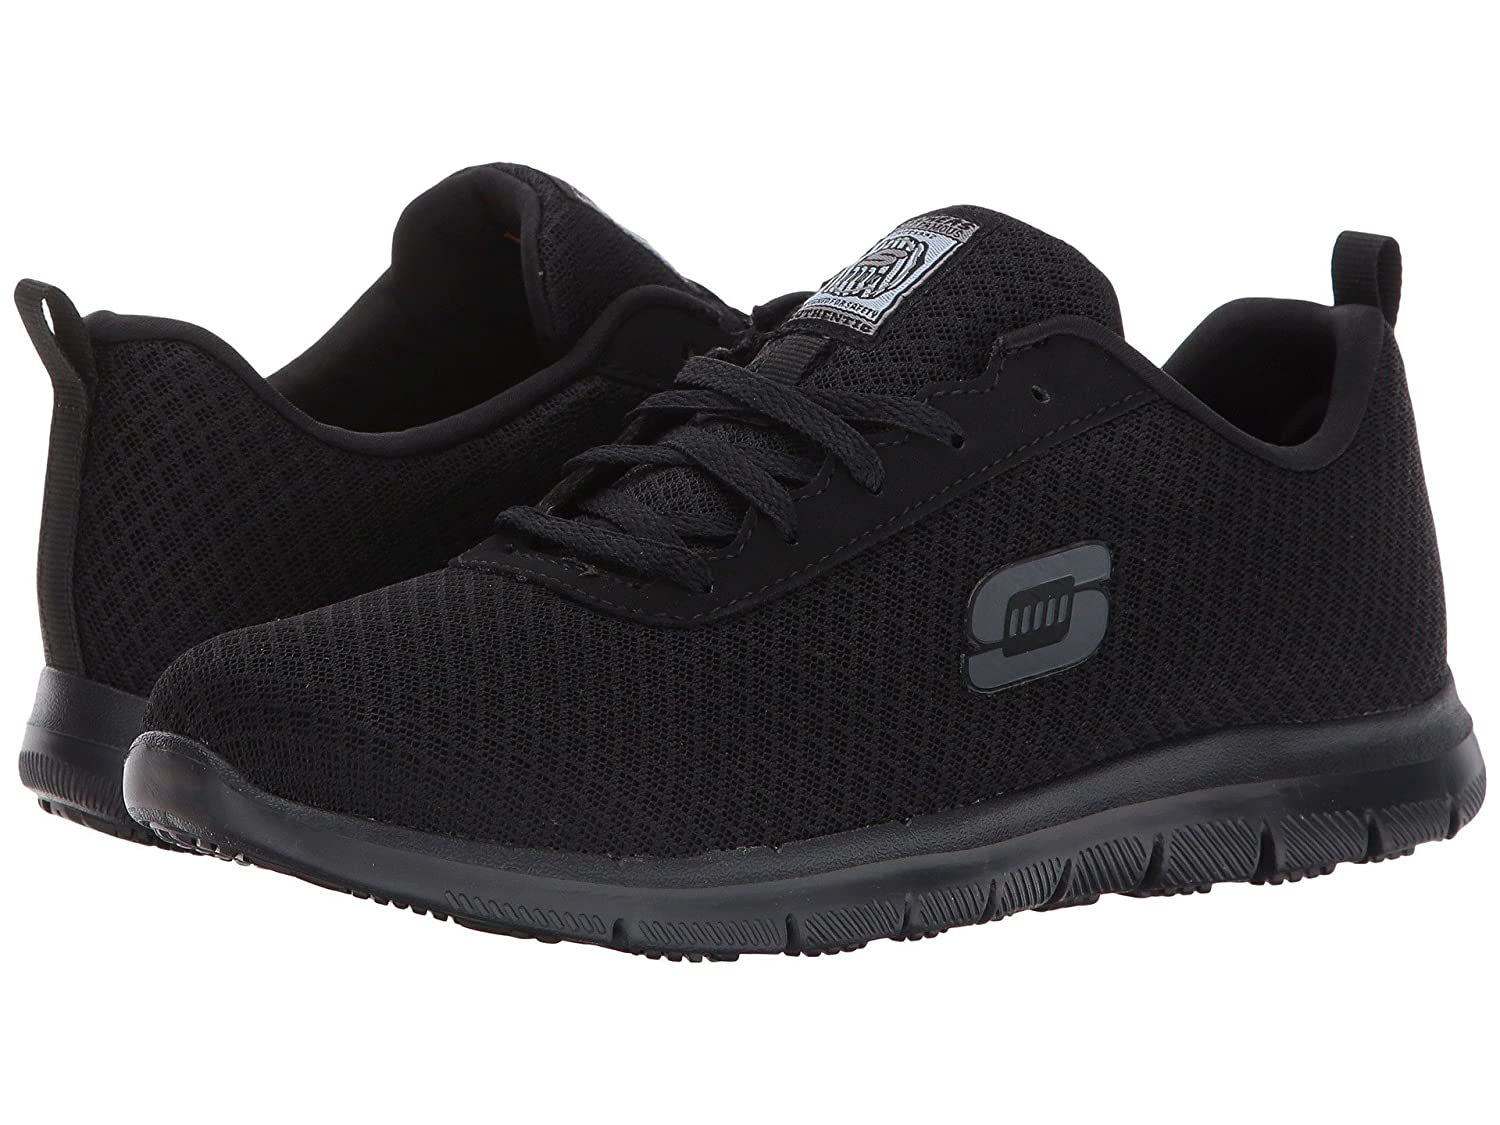 (スケッチャーズ) SKECHERS レディースワークシューズナースシューズ靴 Ghenter Bronaugh [並行輸入品] B07FS5P9YN 5.5 (22.5cm) D Wide|Black Mesh/Water/Stain Repellent Treatment Black Mesh/Water/Stain Repellent Treatment 5.5 (22.5cm) D Wide